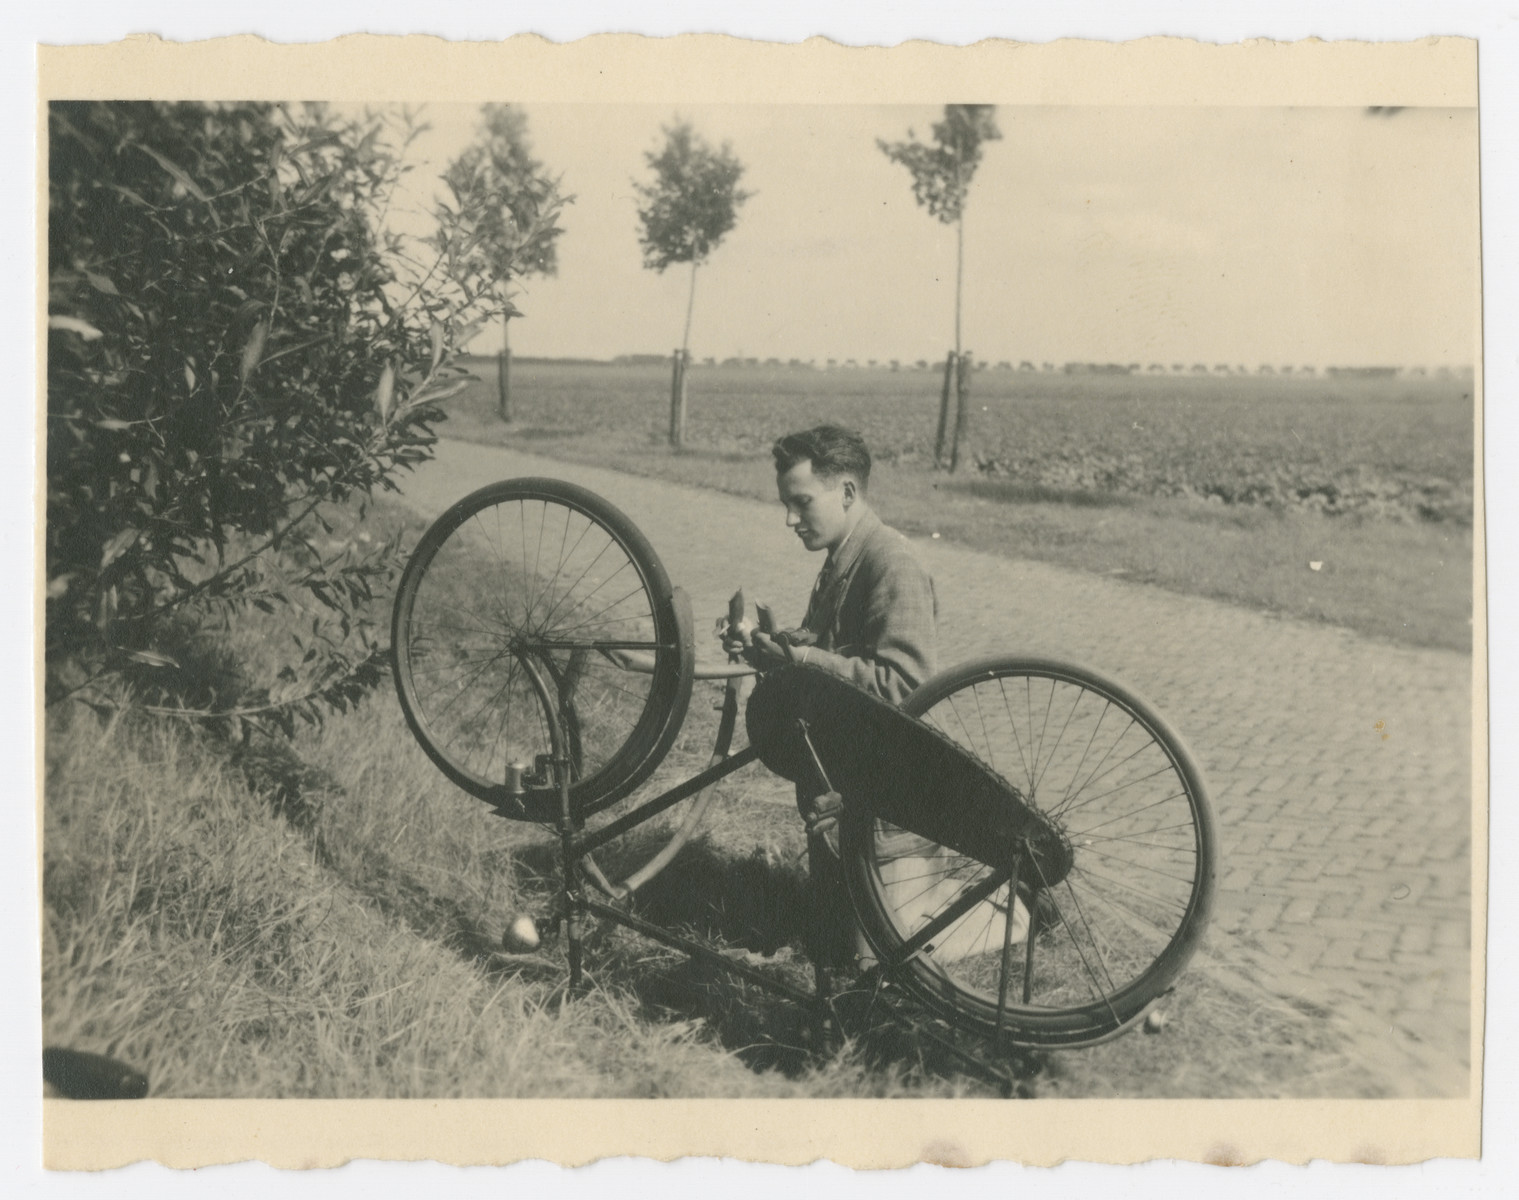 Louis Baars repairs his bicycle by the side of a road.